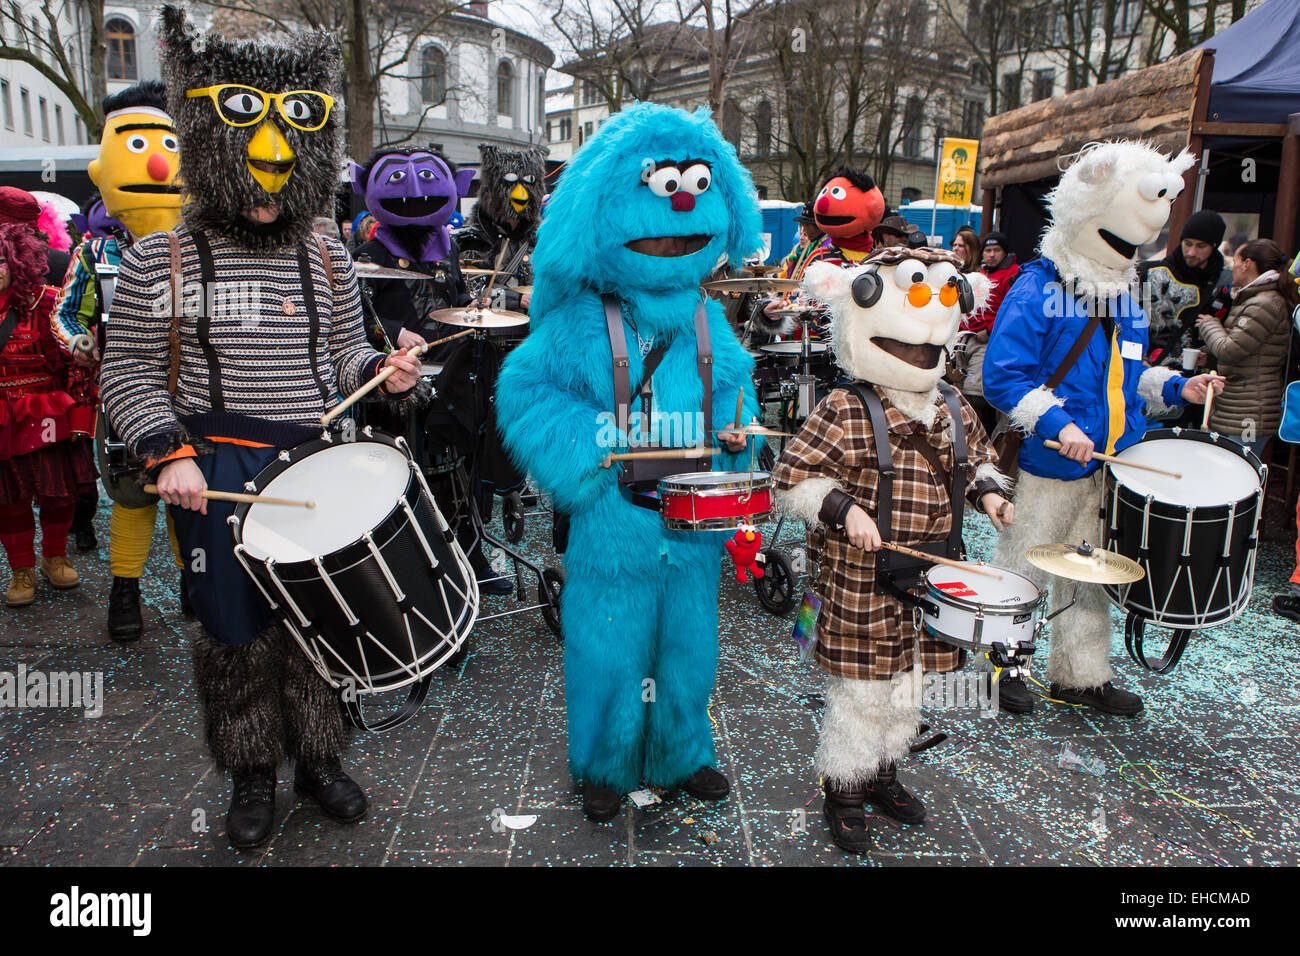 Cookie Monster Kostuem.Cookie Monster High Resolution Stock Photography And Images Alamy